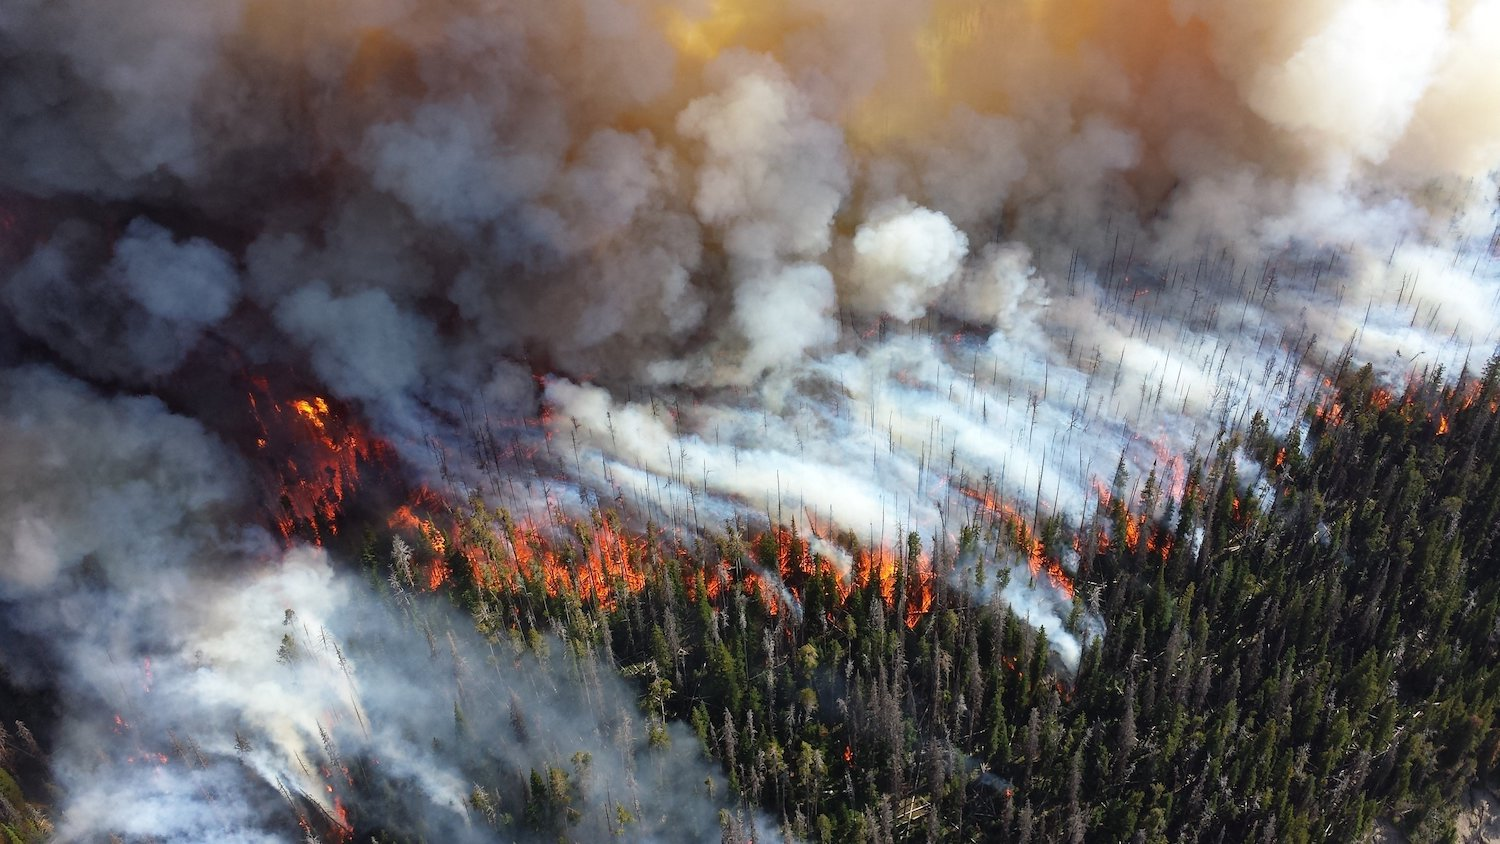 An image of a wildfire burning trees.